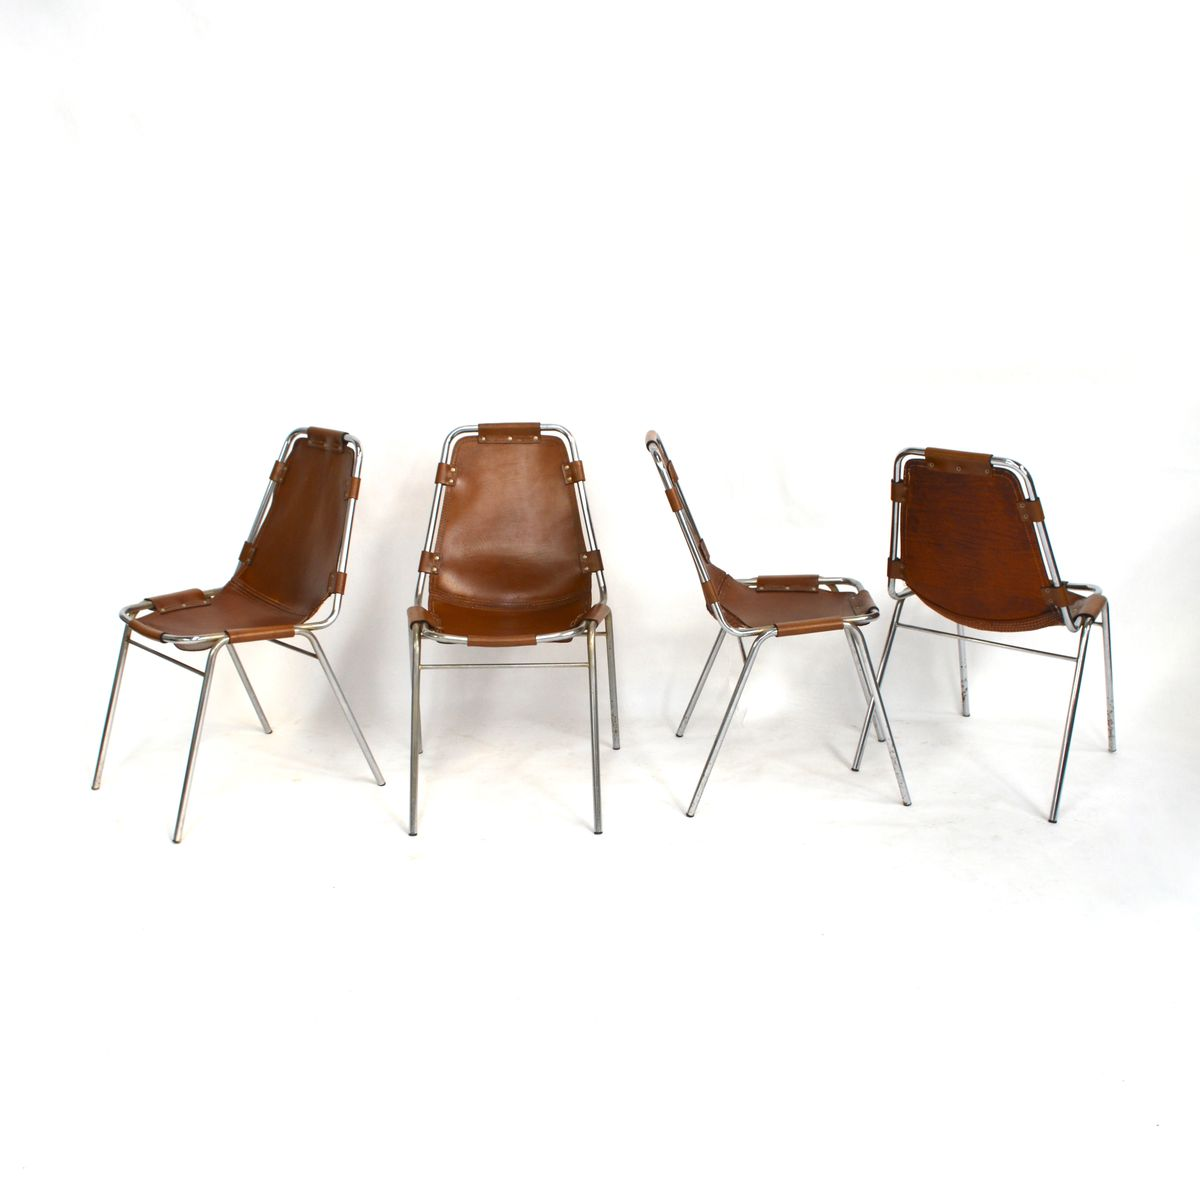 les arcs chairs by charlotte perriand 1970s set of 4 for sale at pamono. Black Bedroom Furniture Sets. Home Design Ideas